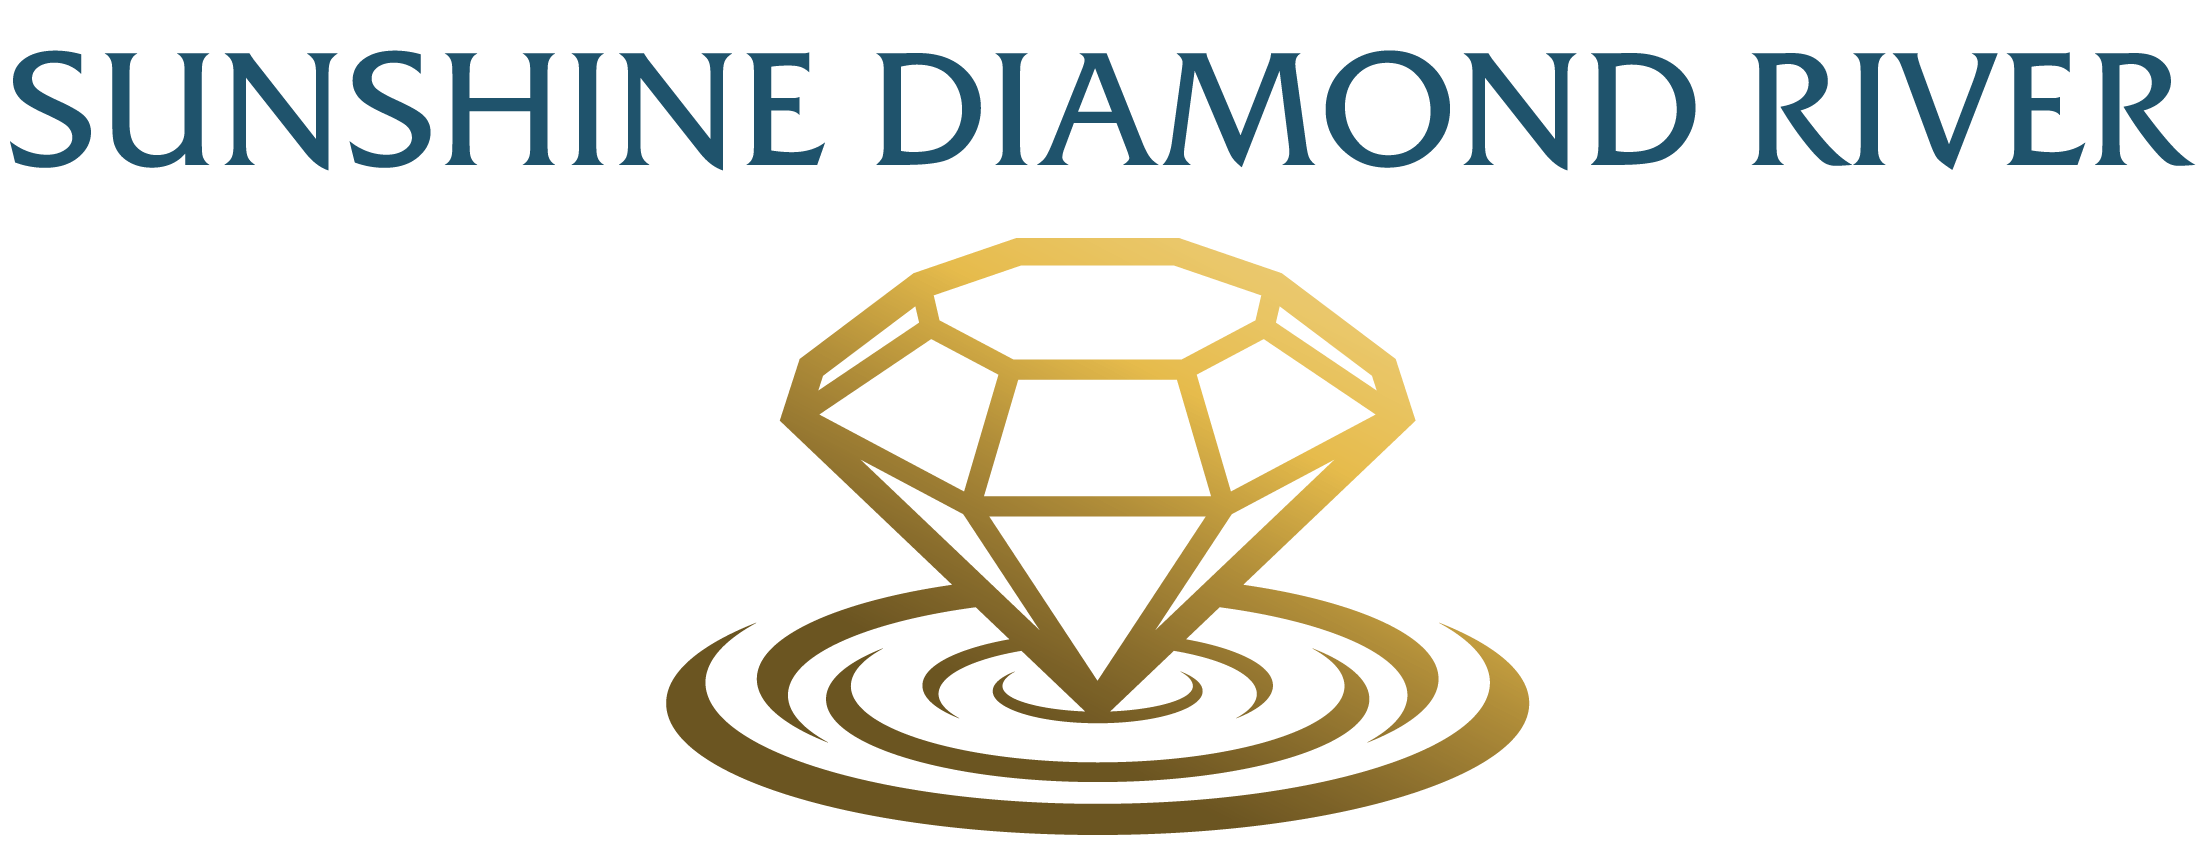 logo sunshine diamond river